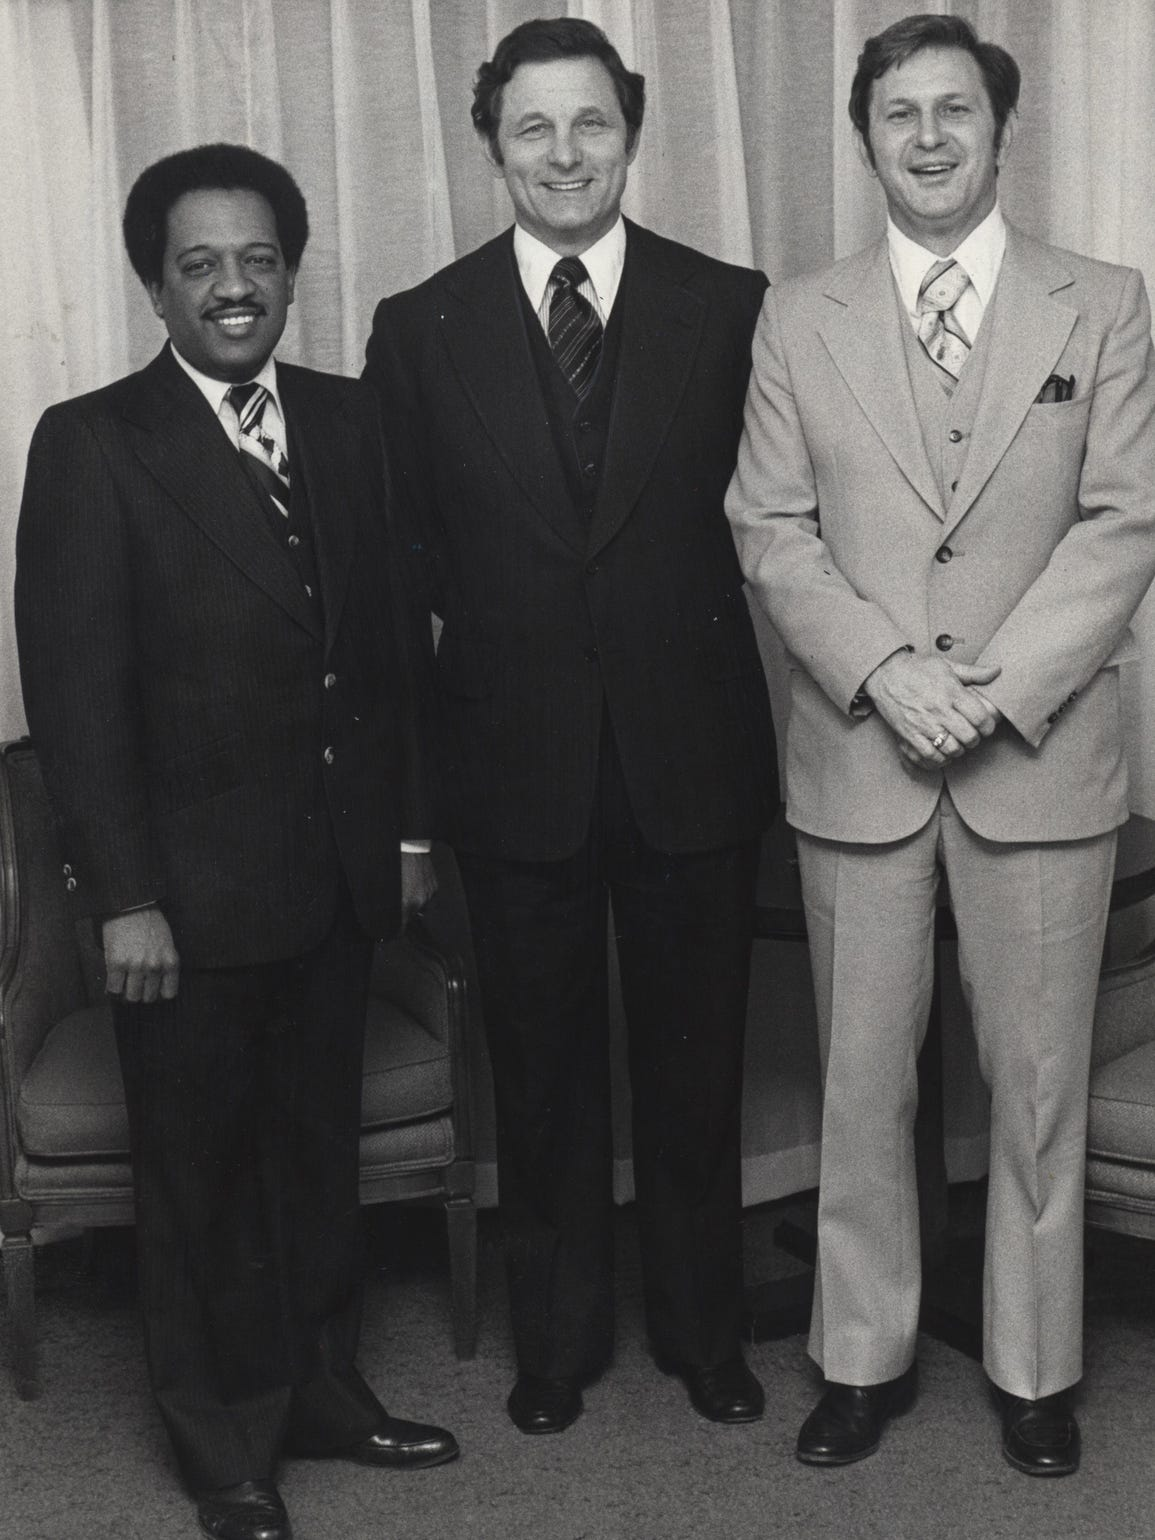 File photo: Sen. Birch Bayh, D-Ind. (center), Gene